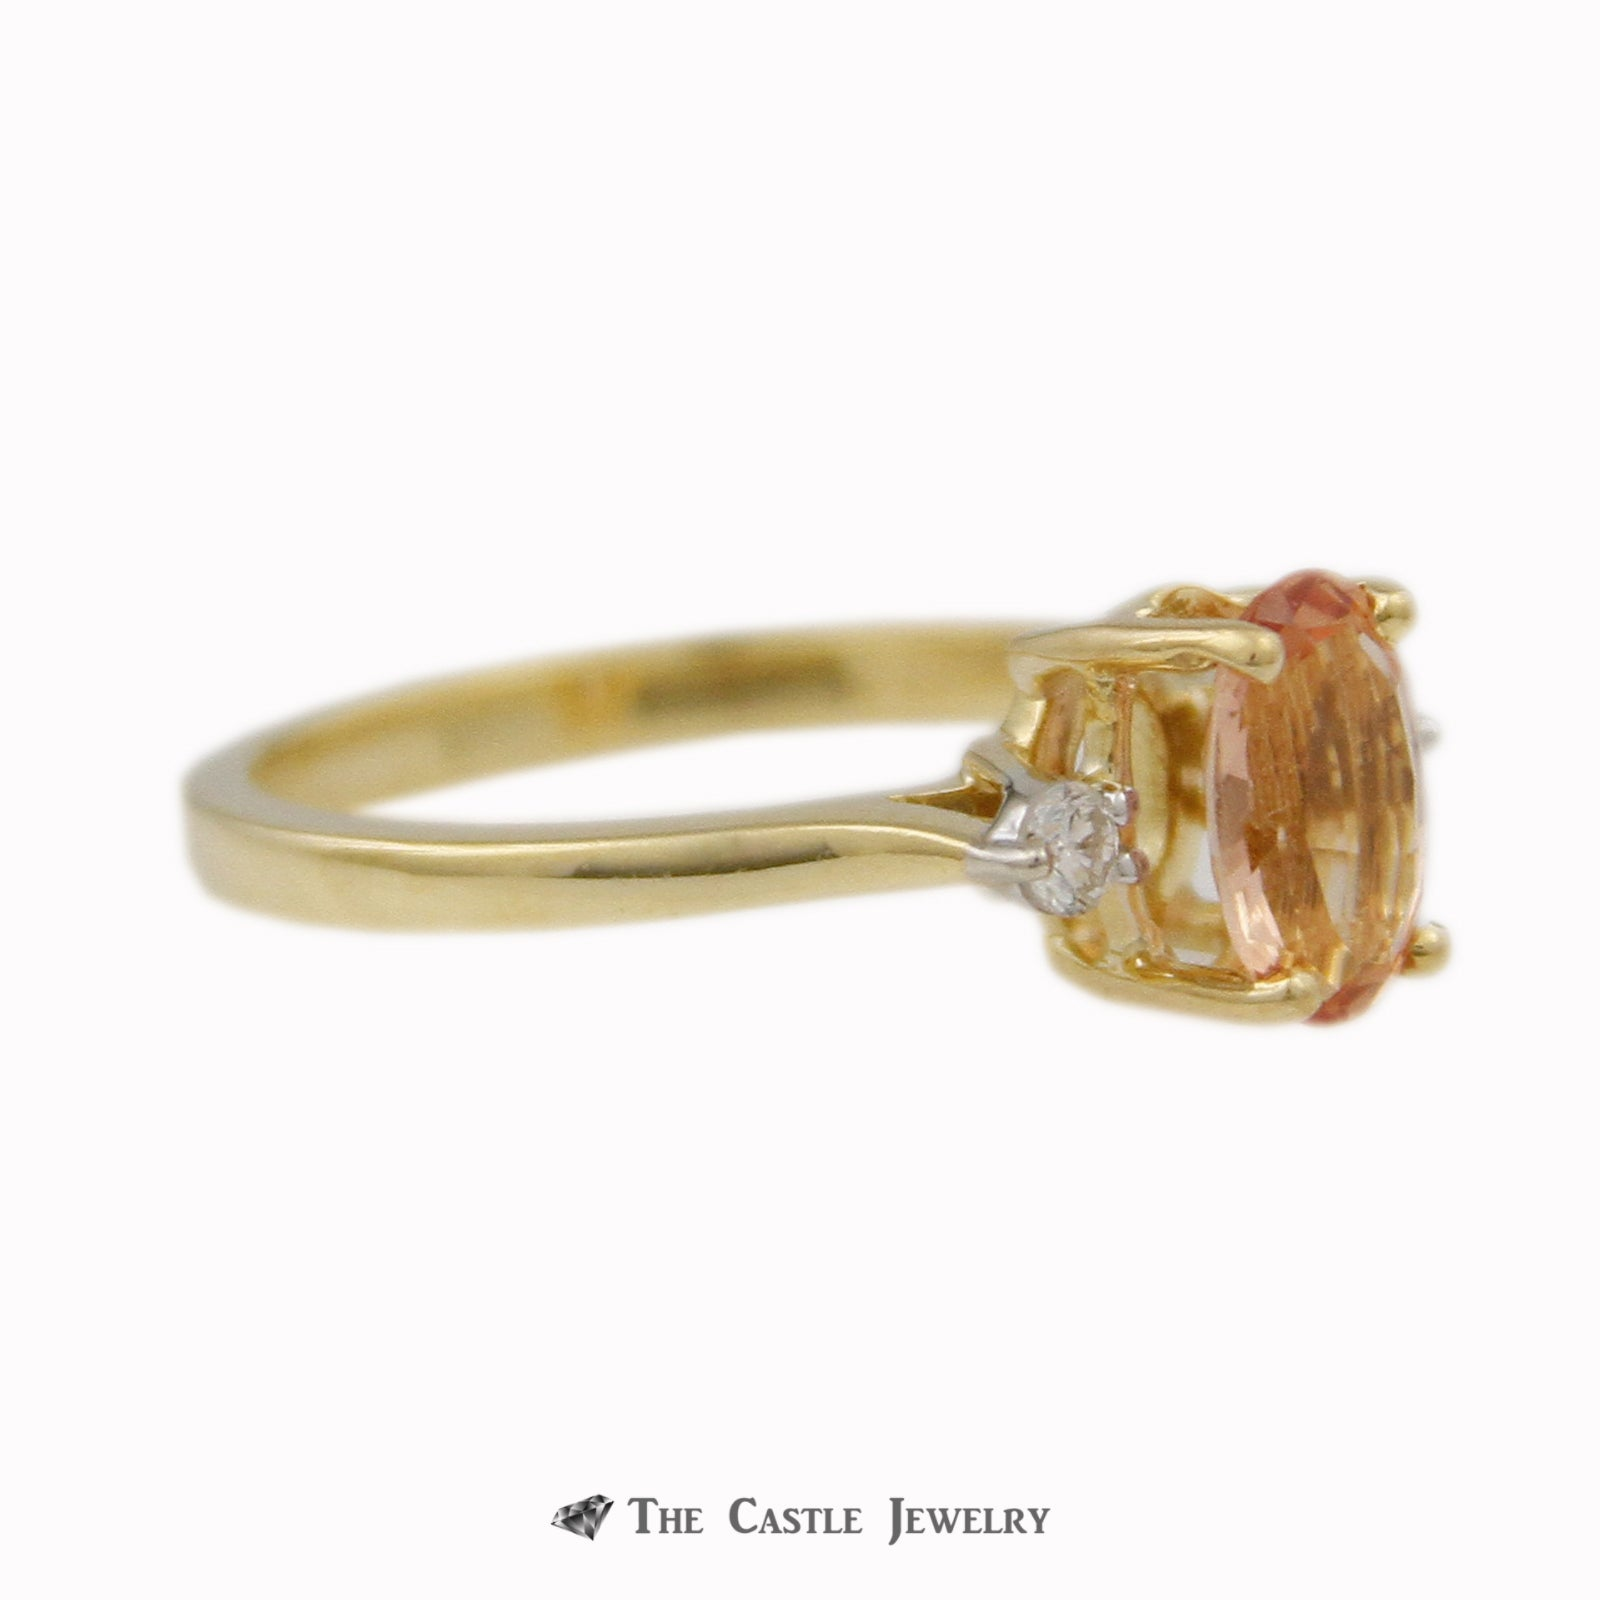 Oval Tropical Topaz Ring w/ Round Brilliant Cut Diamond Accent Sides in 18k Yellow Gold